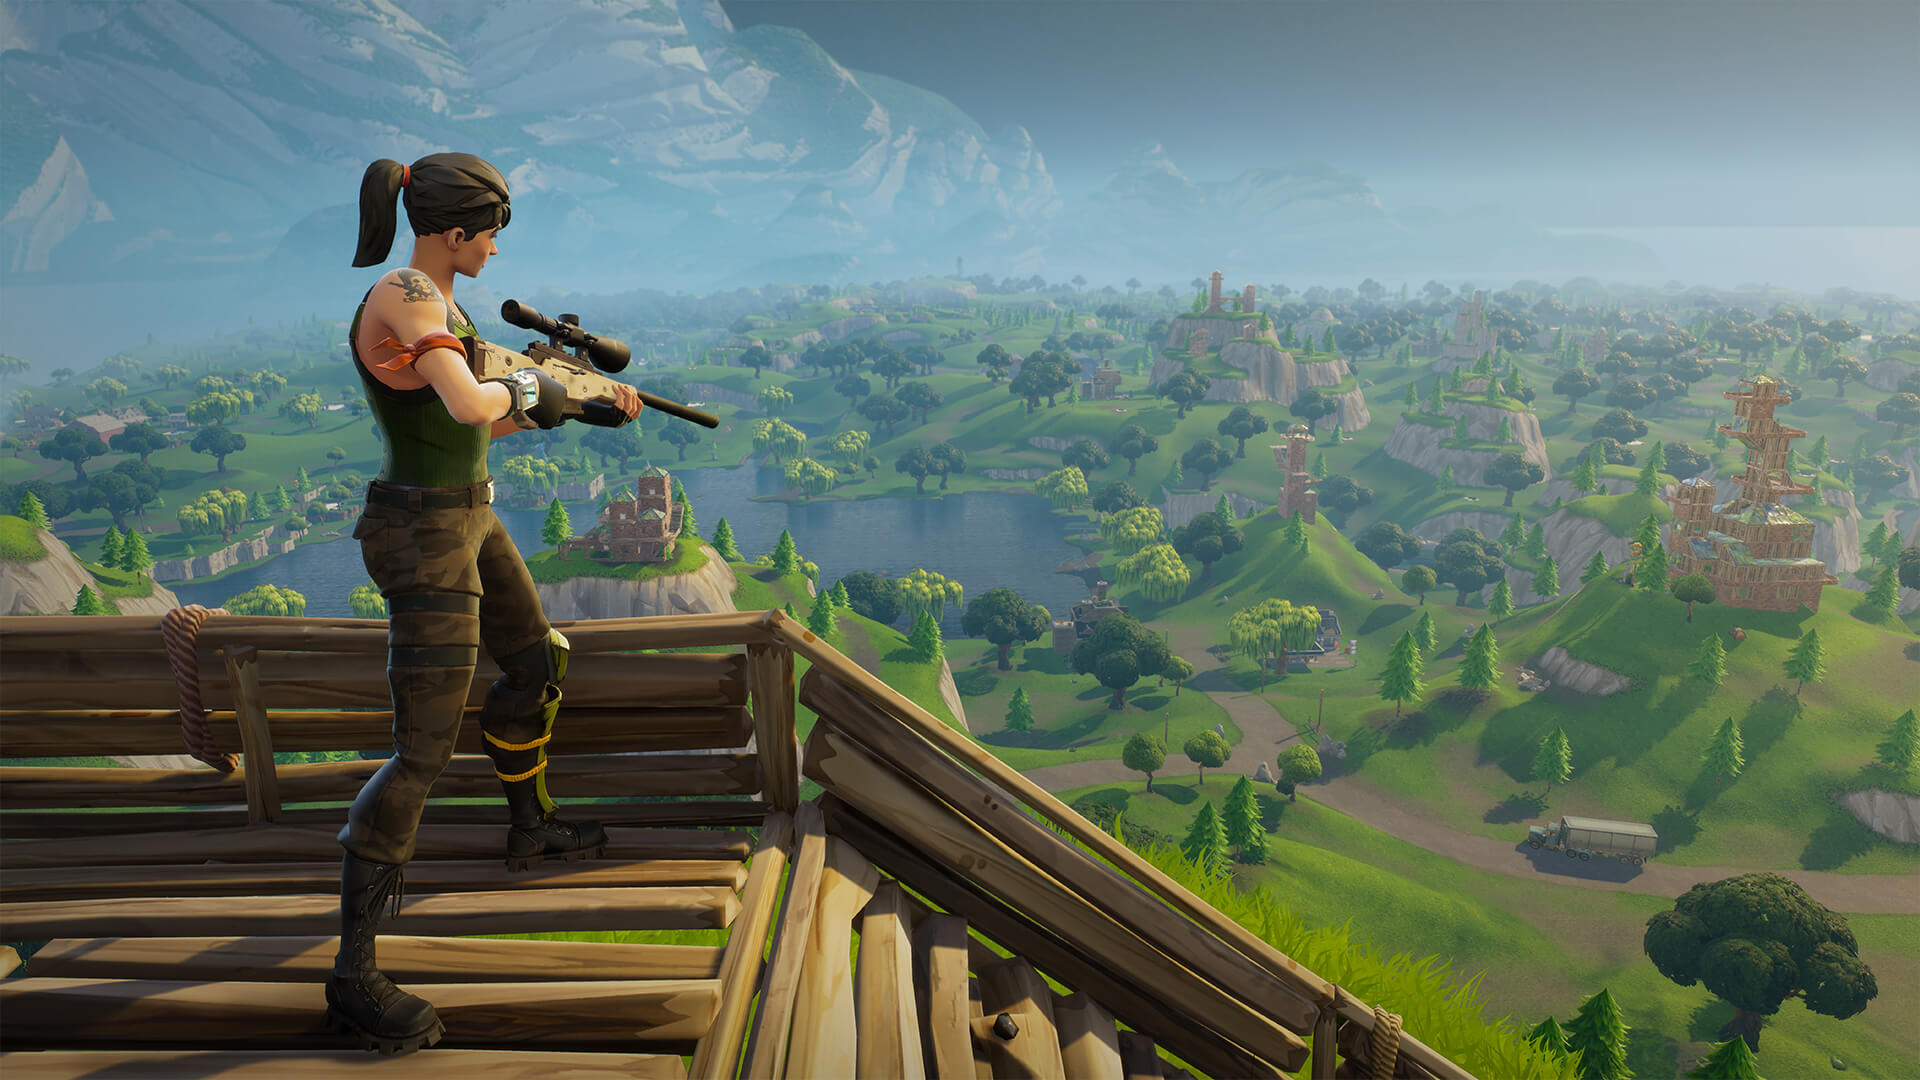 Epic Games will pump $100 million into Fortnite eSports competitions